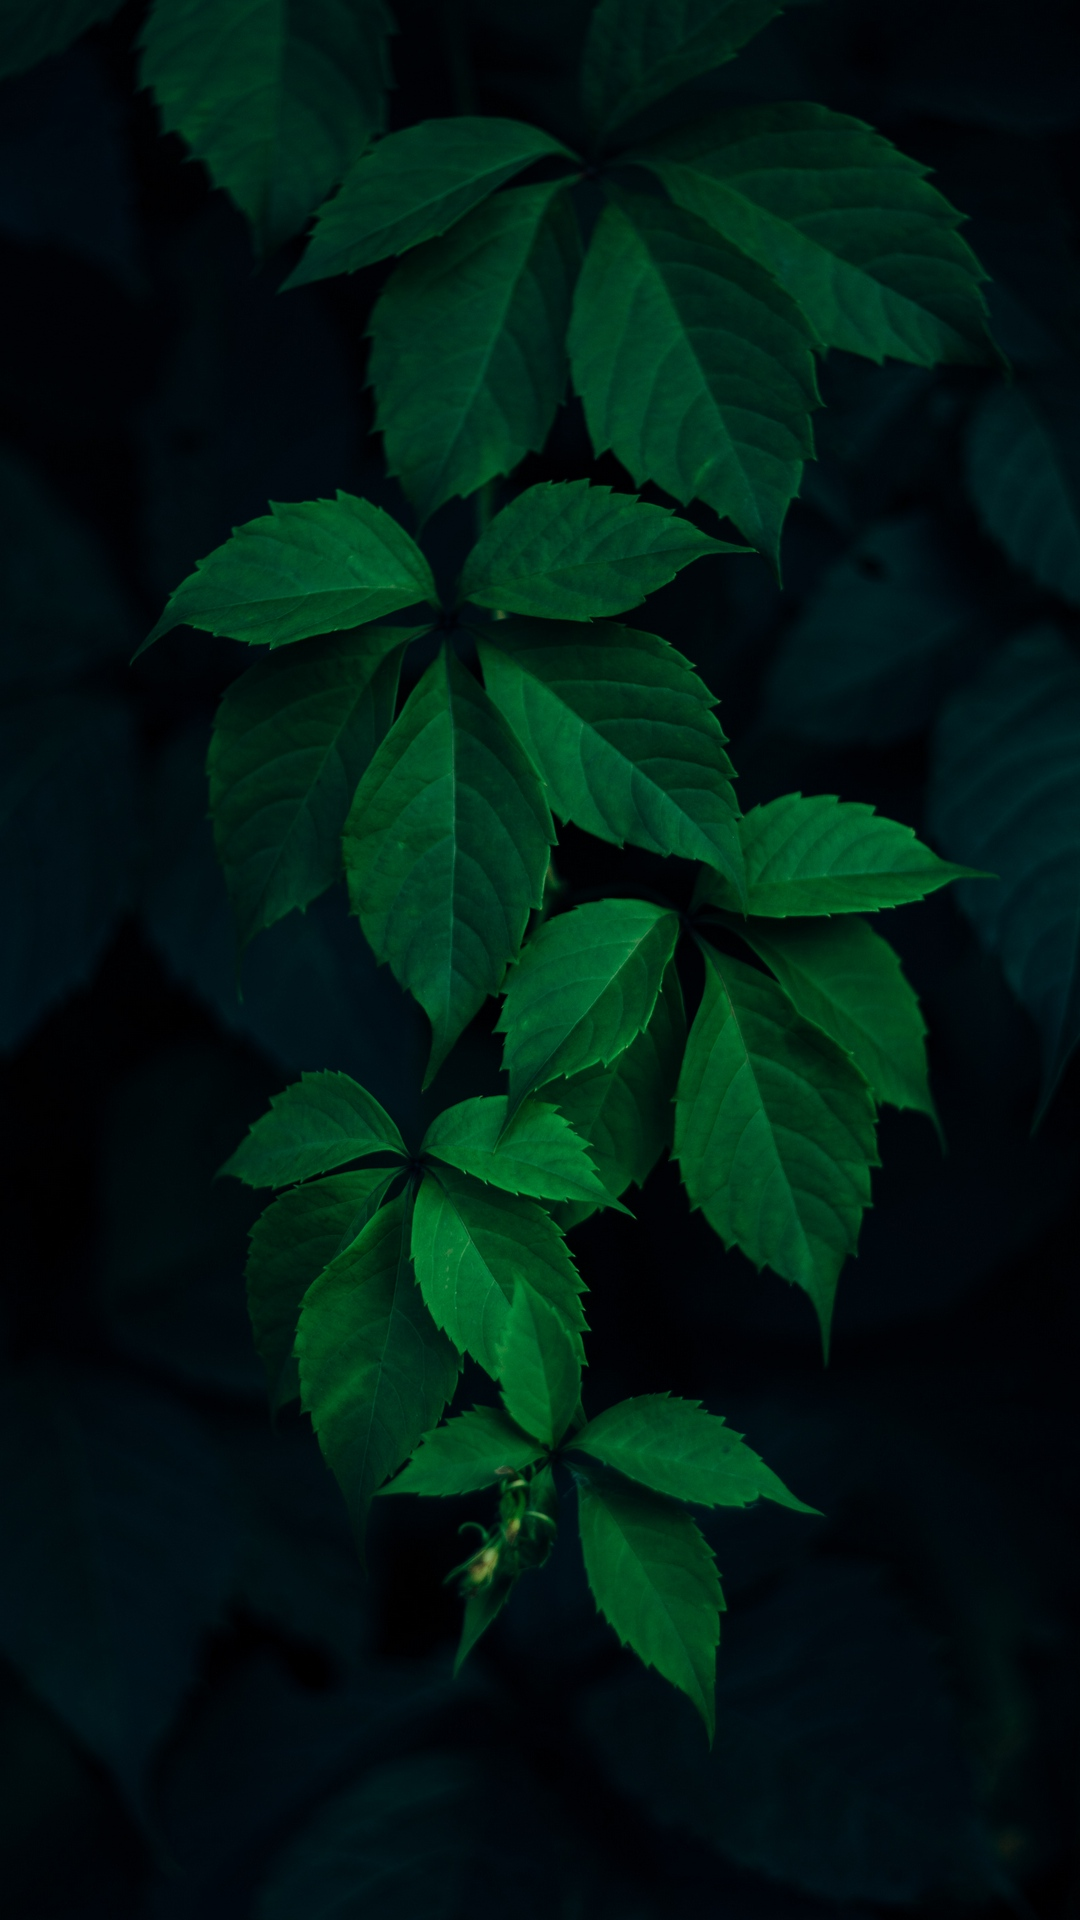 Leaves Green Branches Dark Wallpaper Iphone Leaves Background 1080x1920 Download Hd Wallpaper Wallpapertip